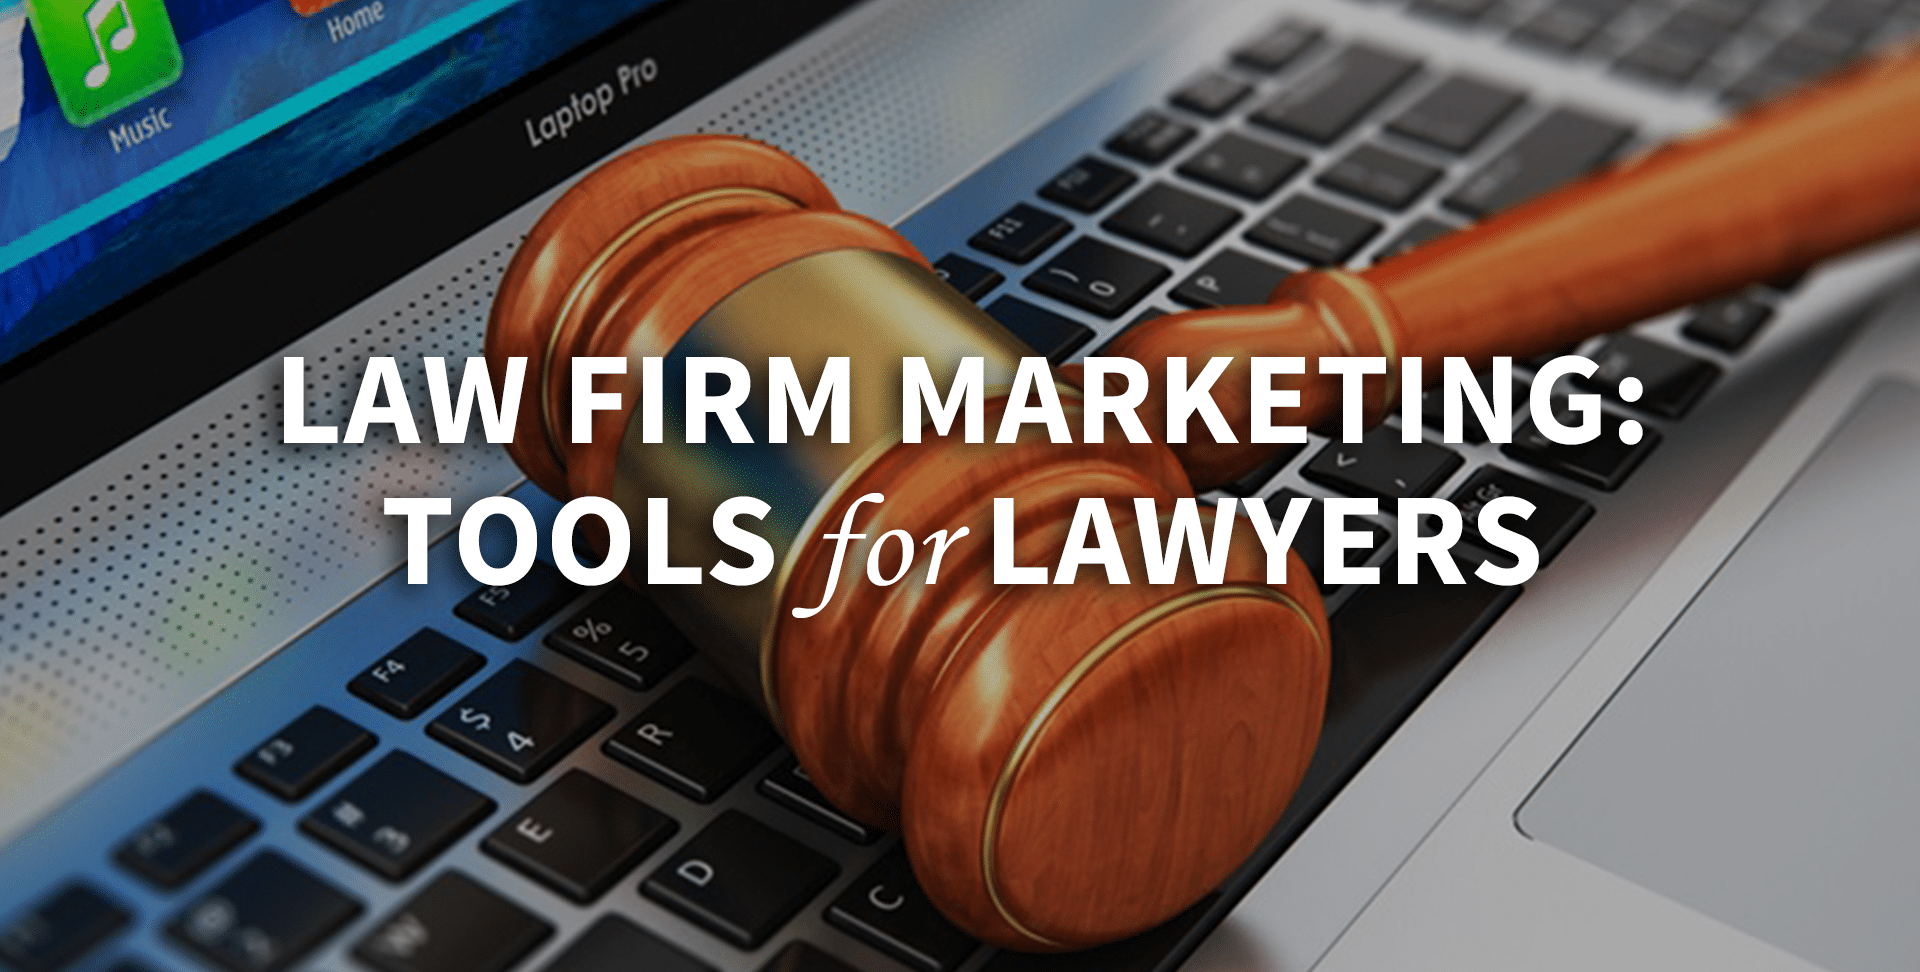 The 3 Most Beneficial Law Firm Marketing Tools For Lawyers